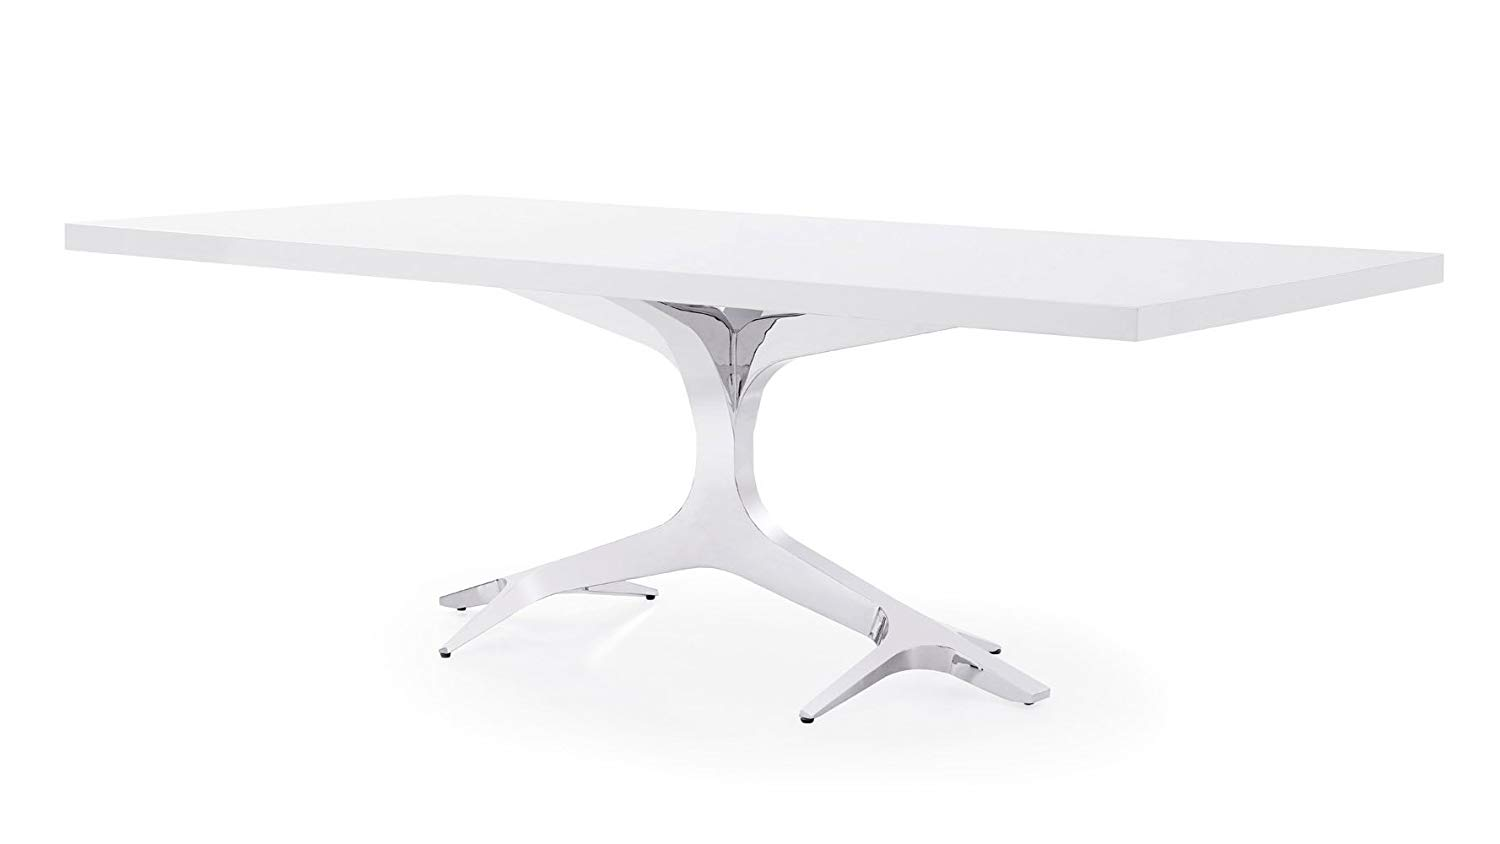 Zuri Furniture Modern Arbre Dining Table in White High Gloss Lacquer Polished Stainless Steel Base